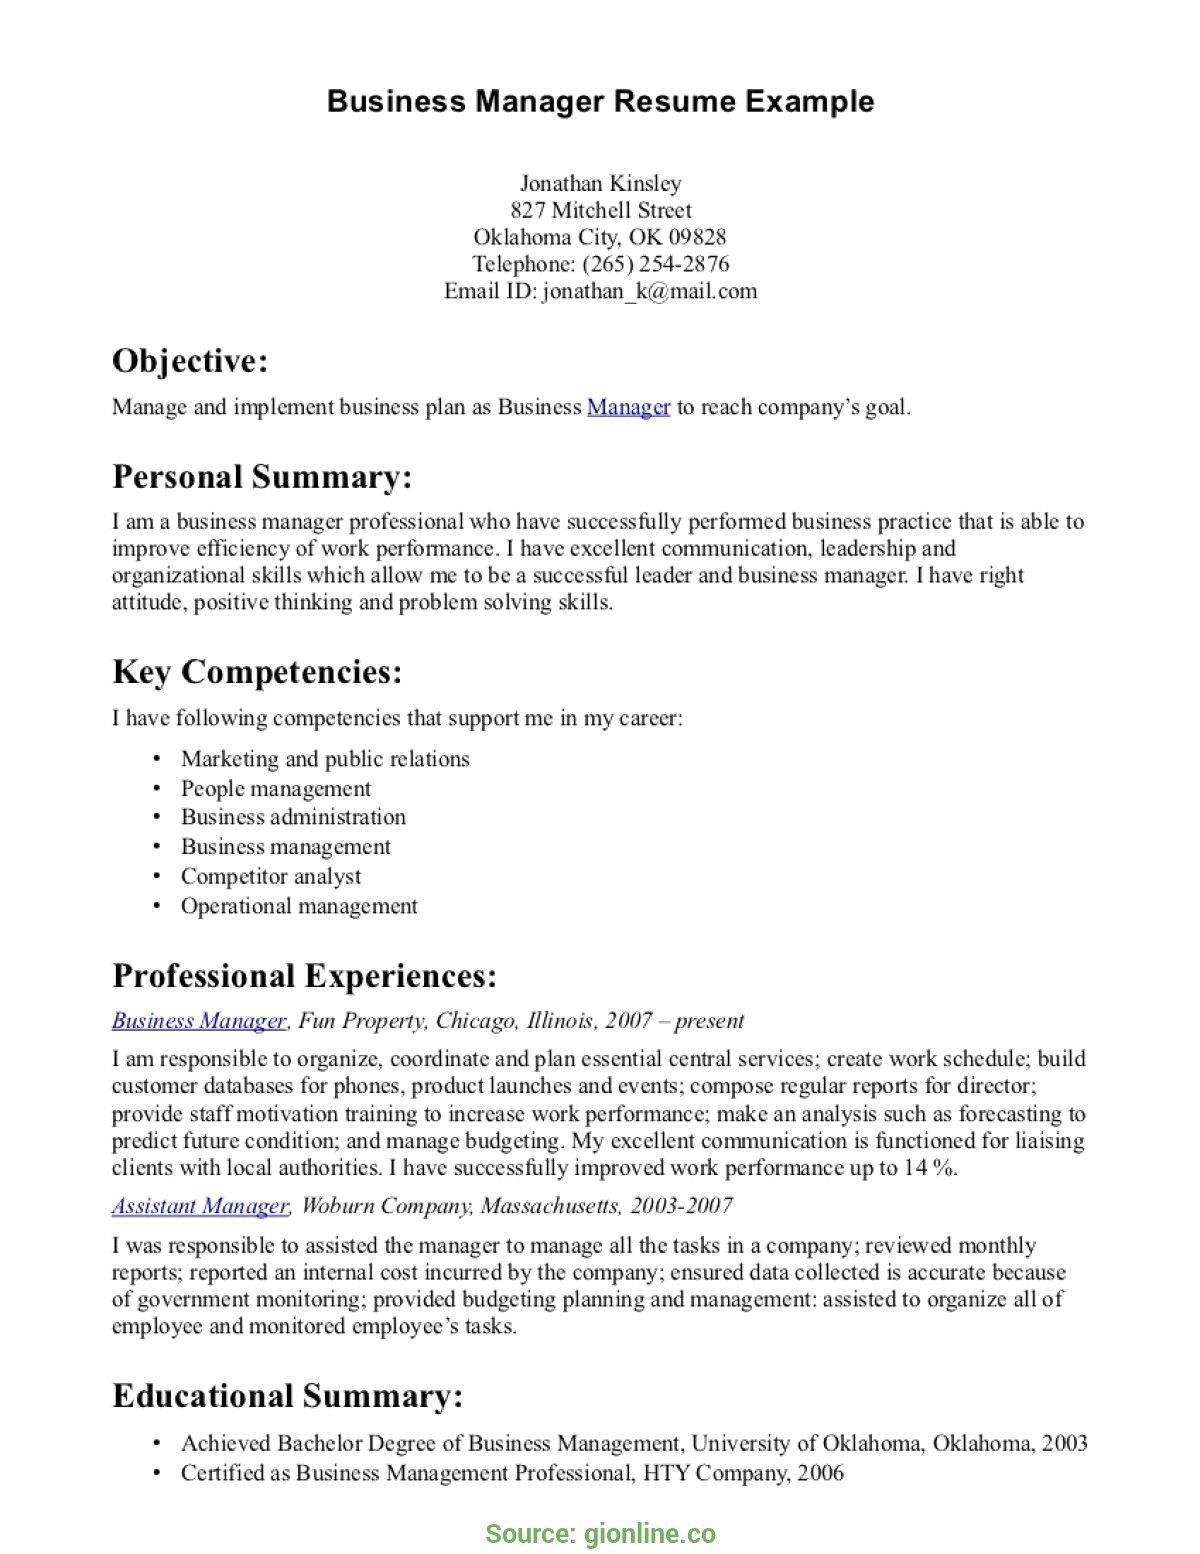 Resume Examples Business Management Business resume